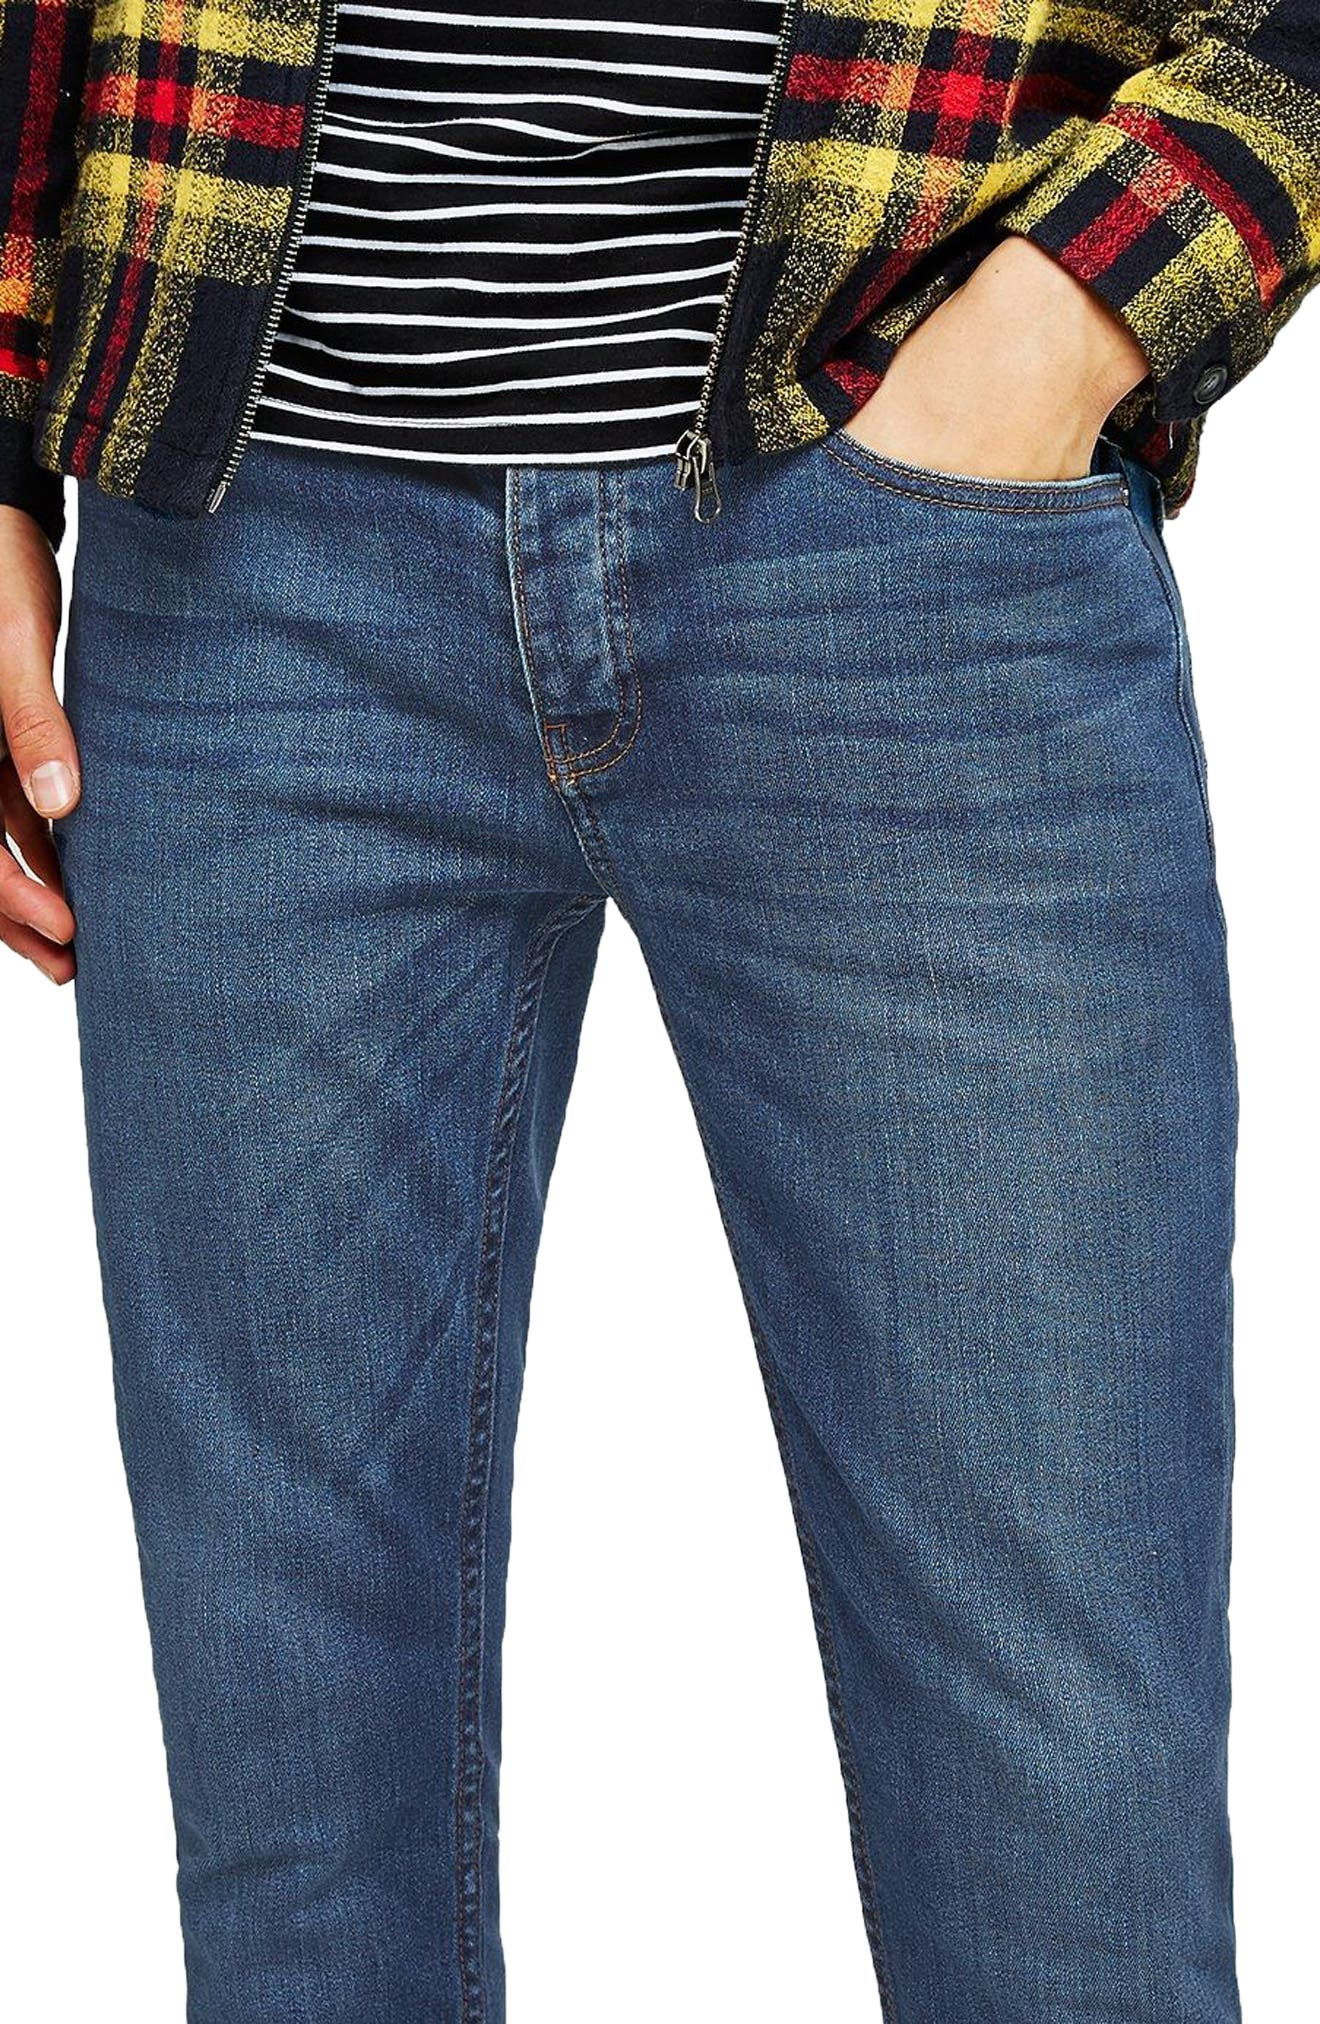 Stretch Skinny Fit Jeans,                             Main thumbnail 1, color,                             BLUE